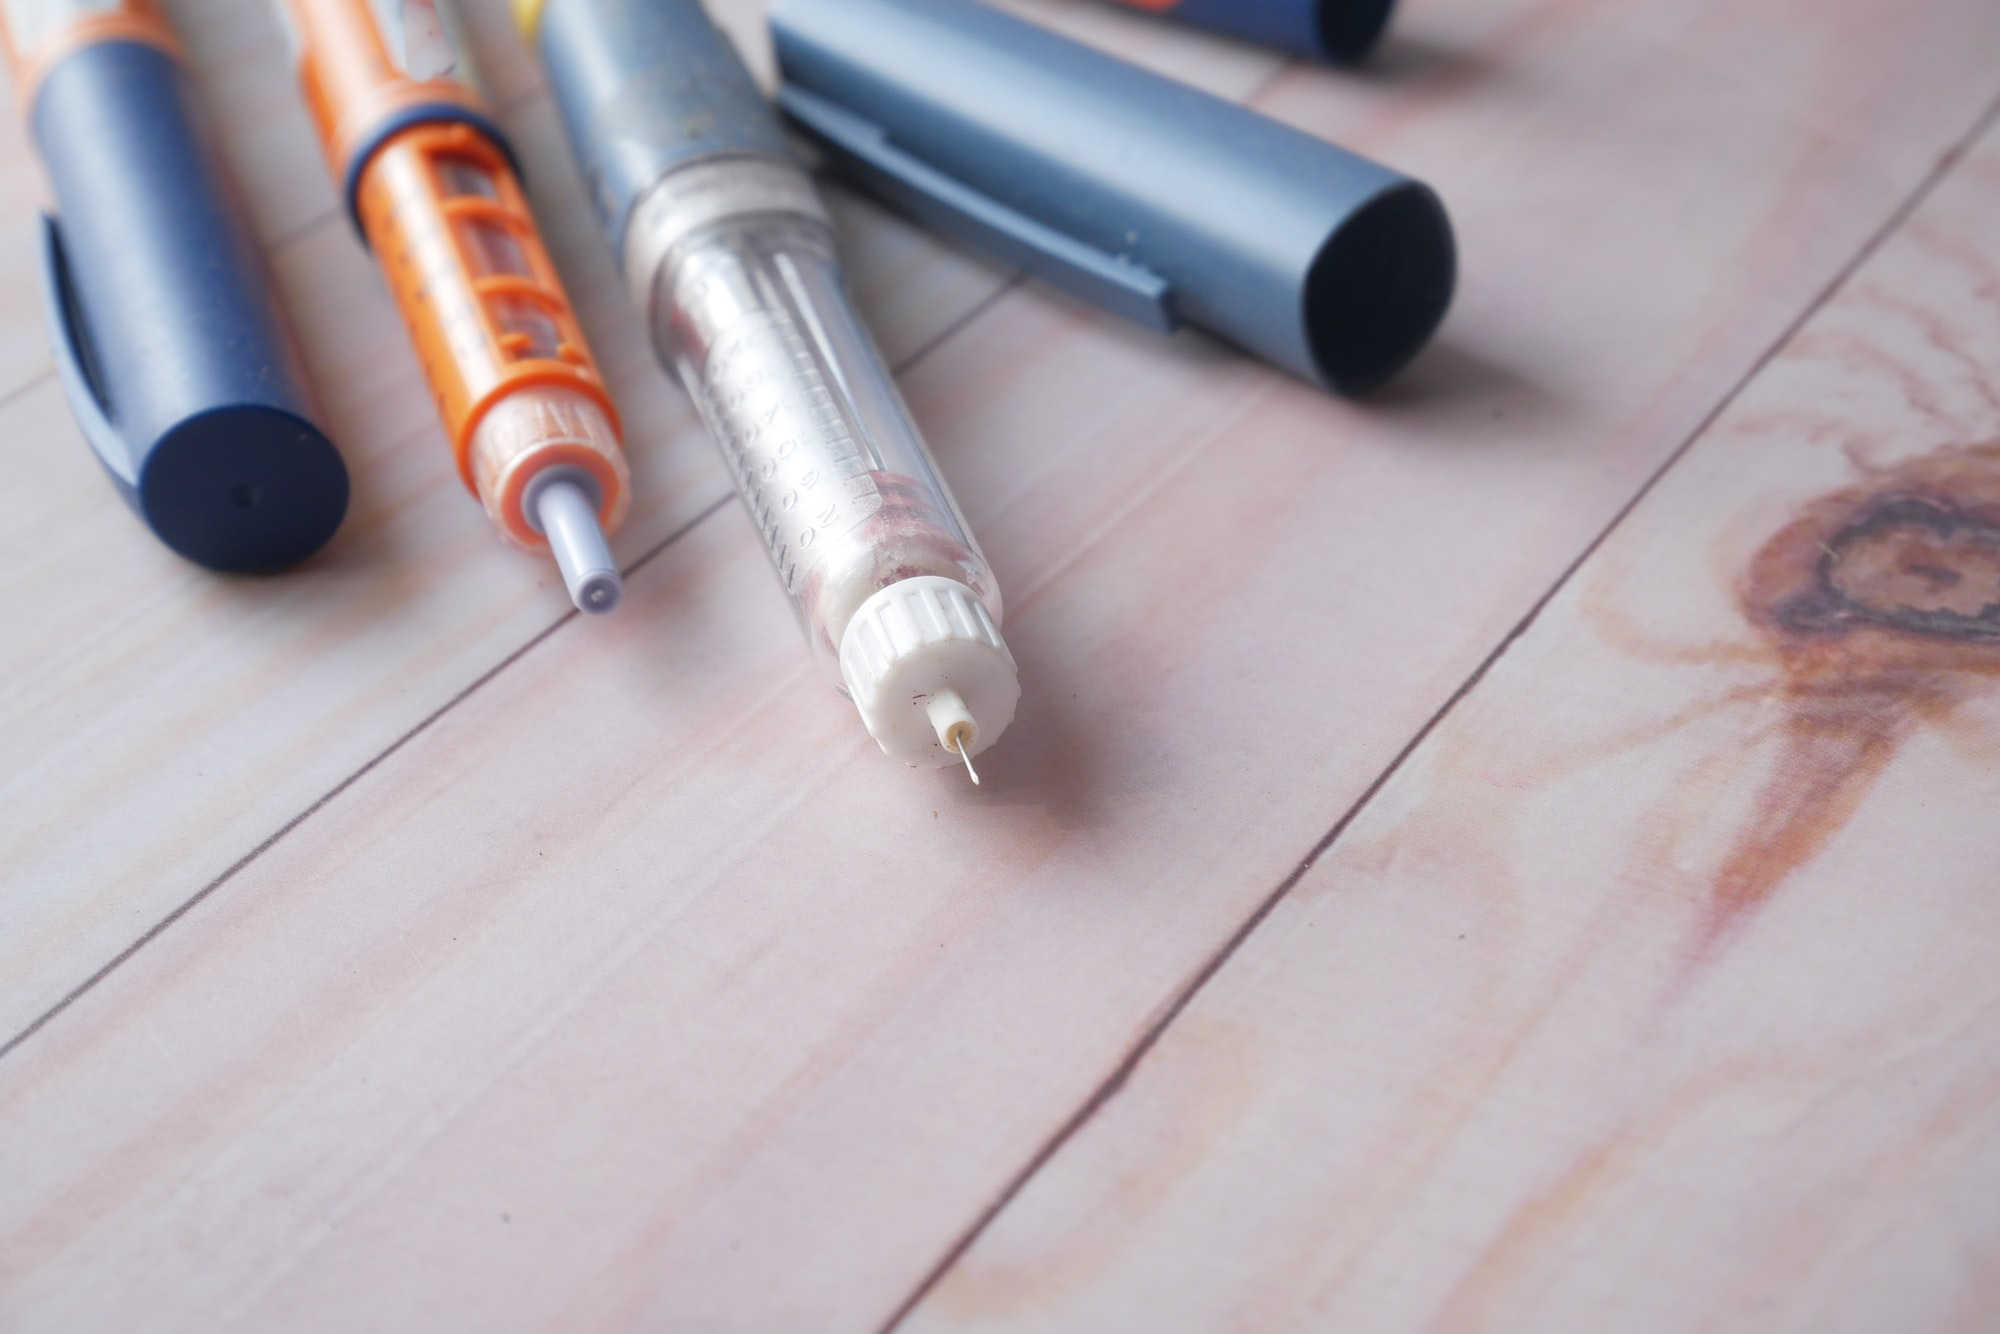 Insulin pens on wooden background, close up